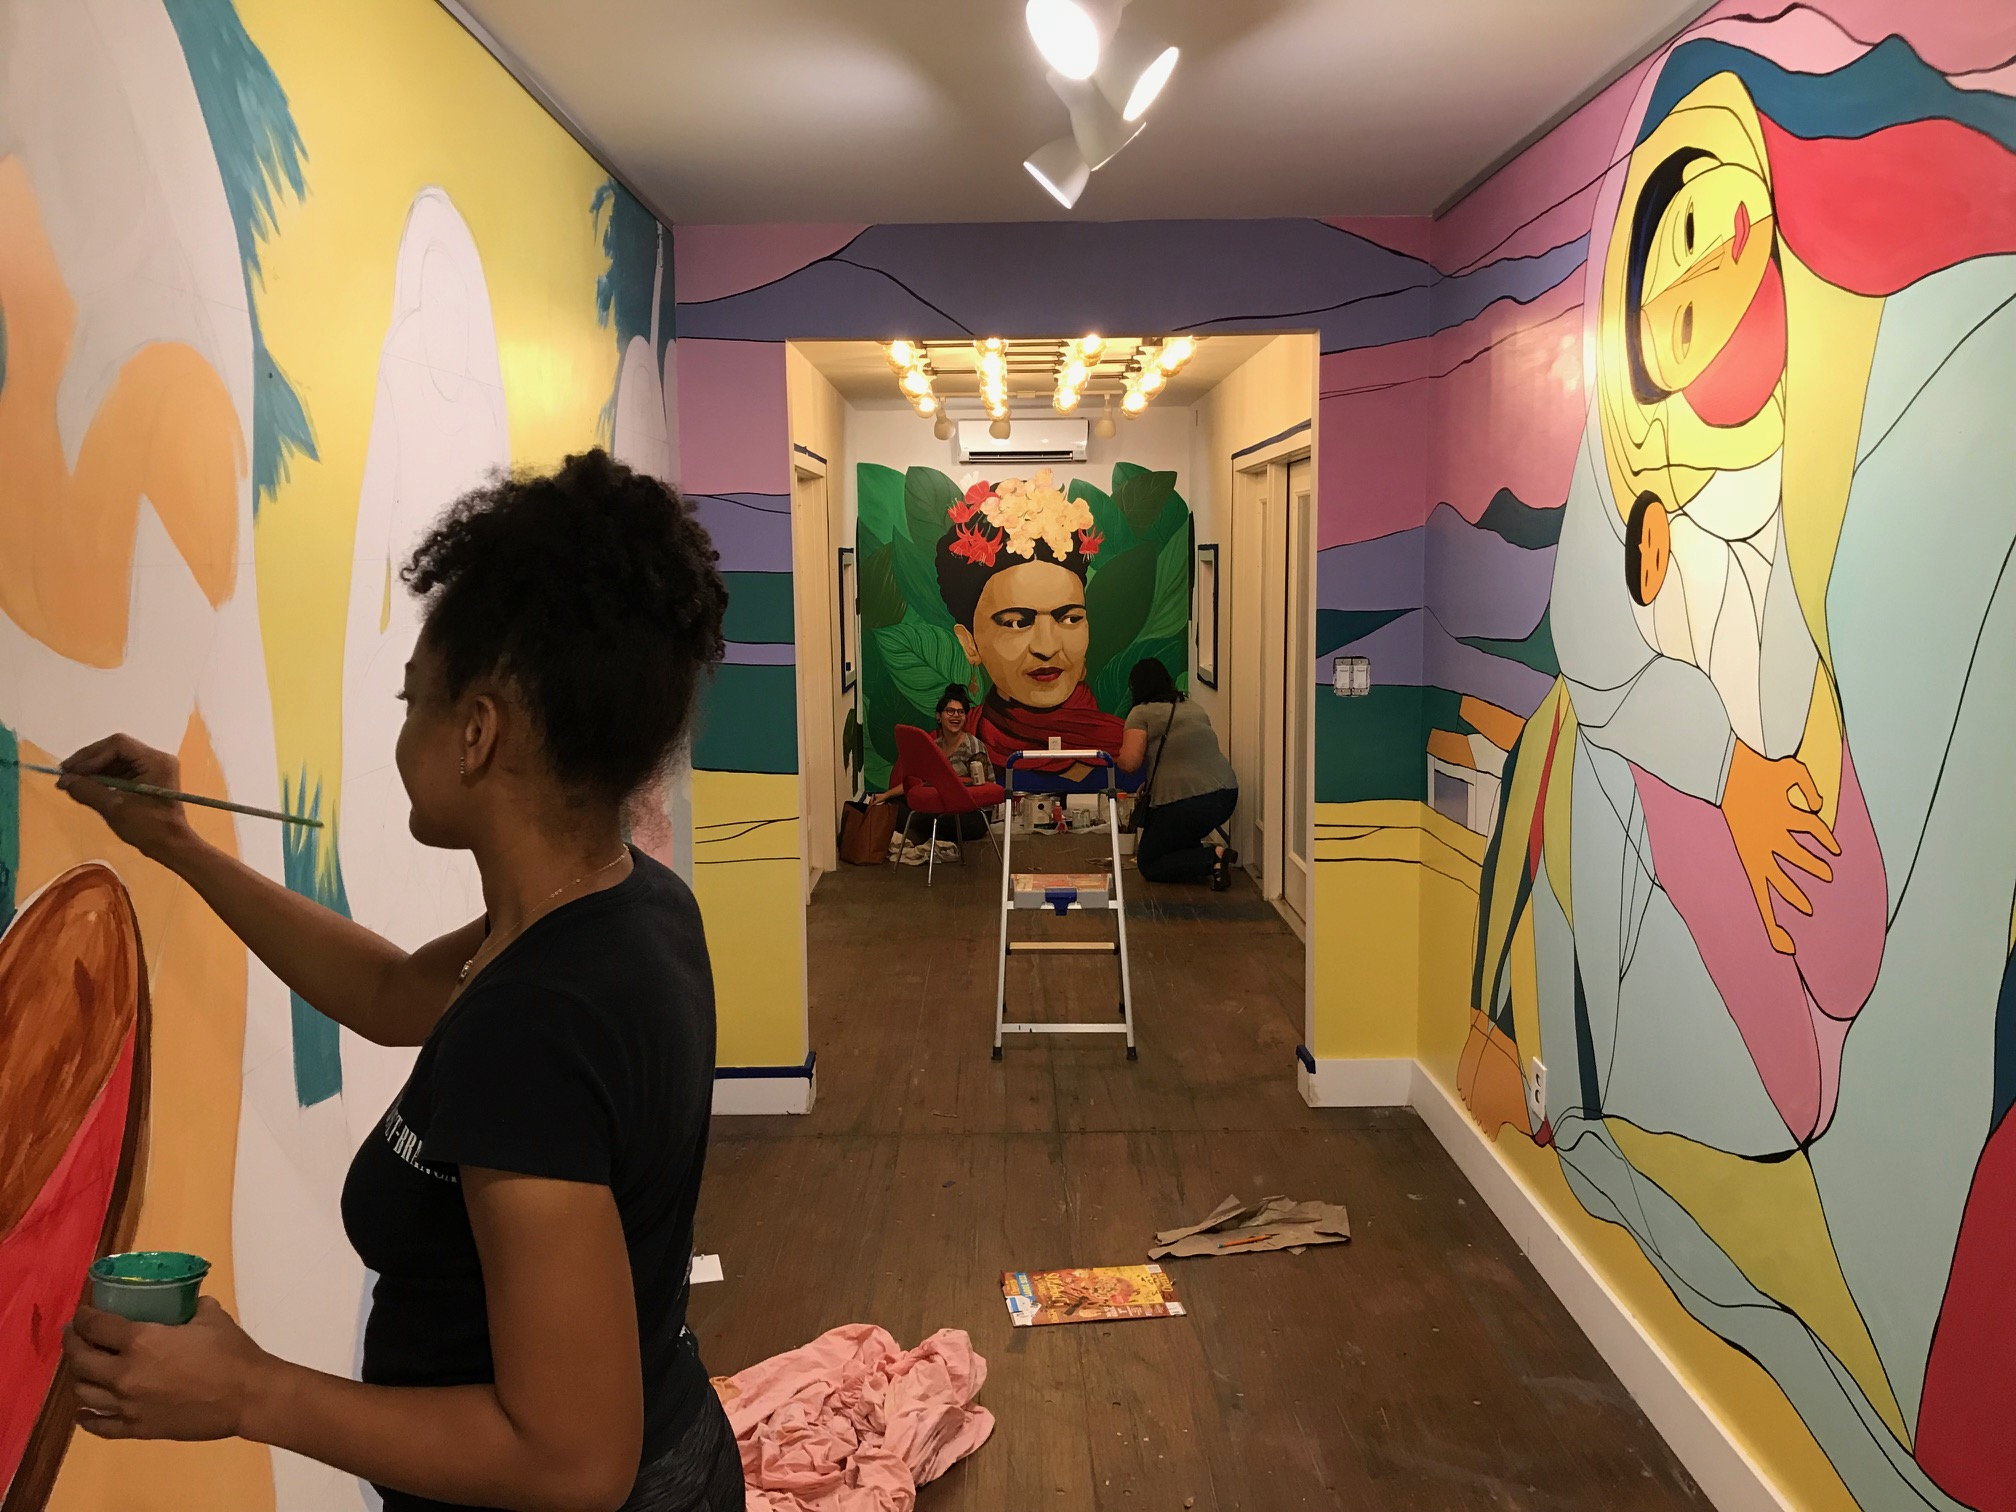 In-process mural installation